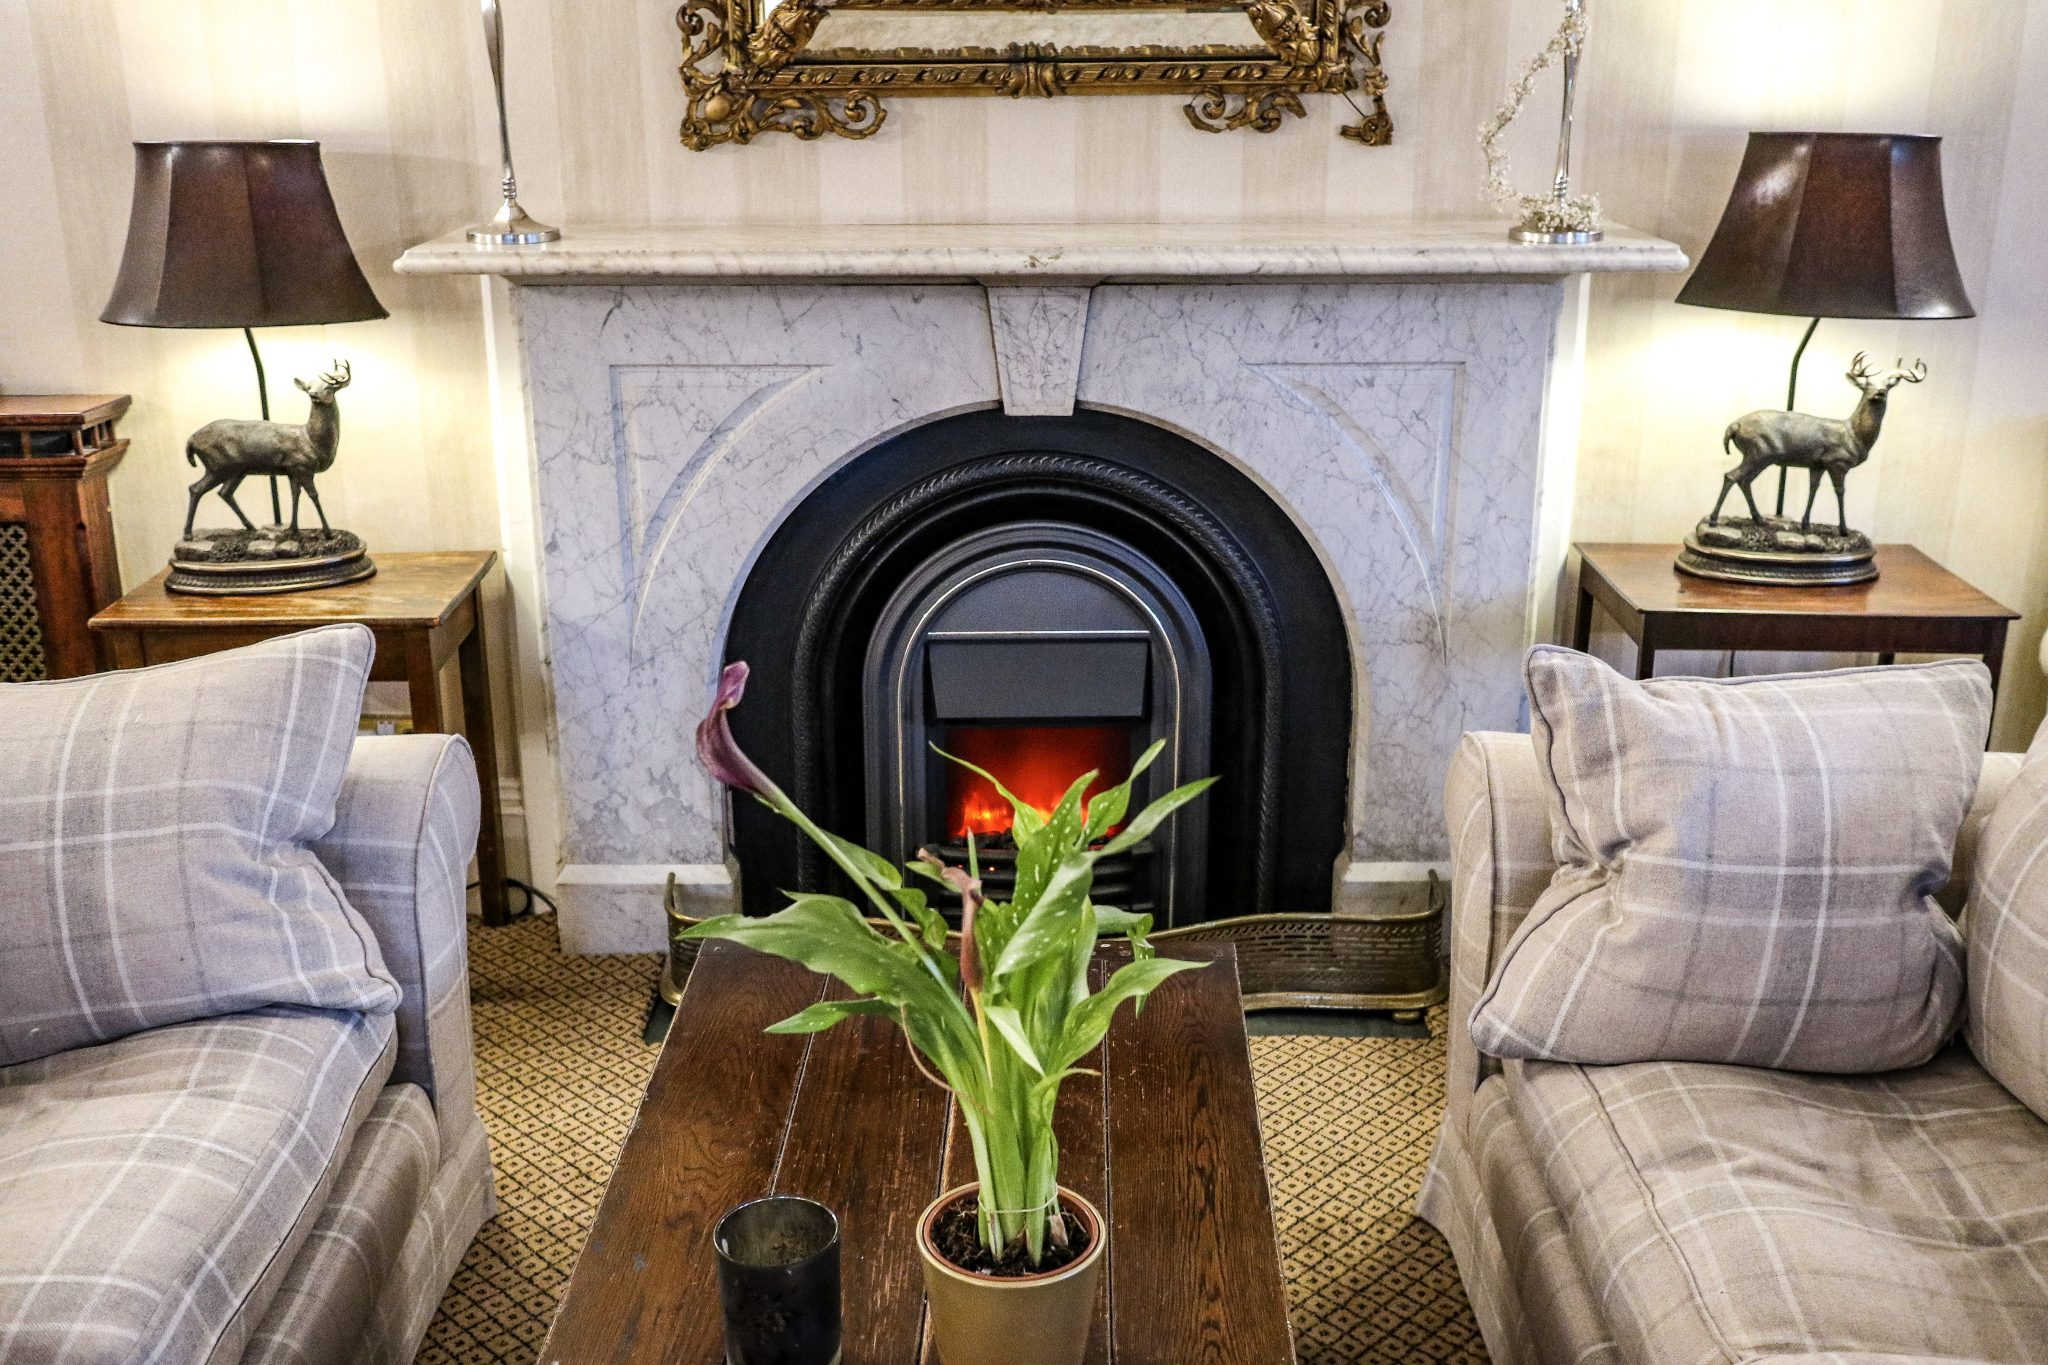 Fireplace at The Wordsworth Hotel & Spa, Grasmere, The Lake District